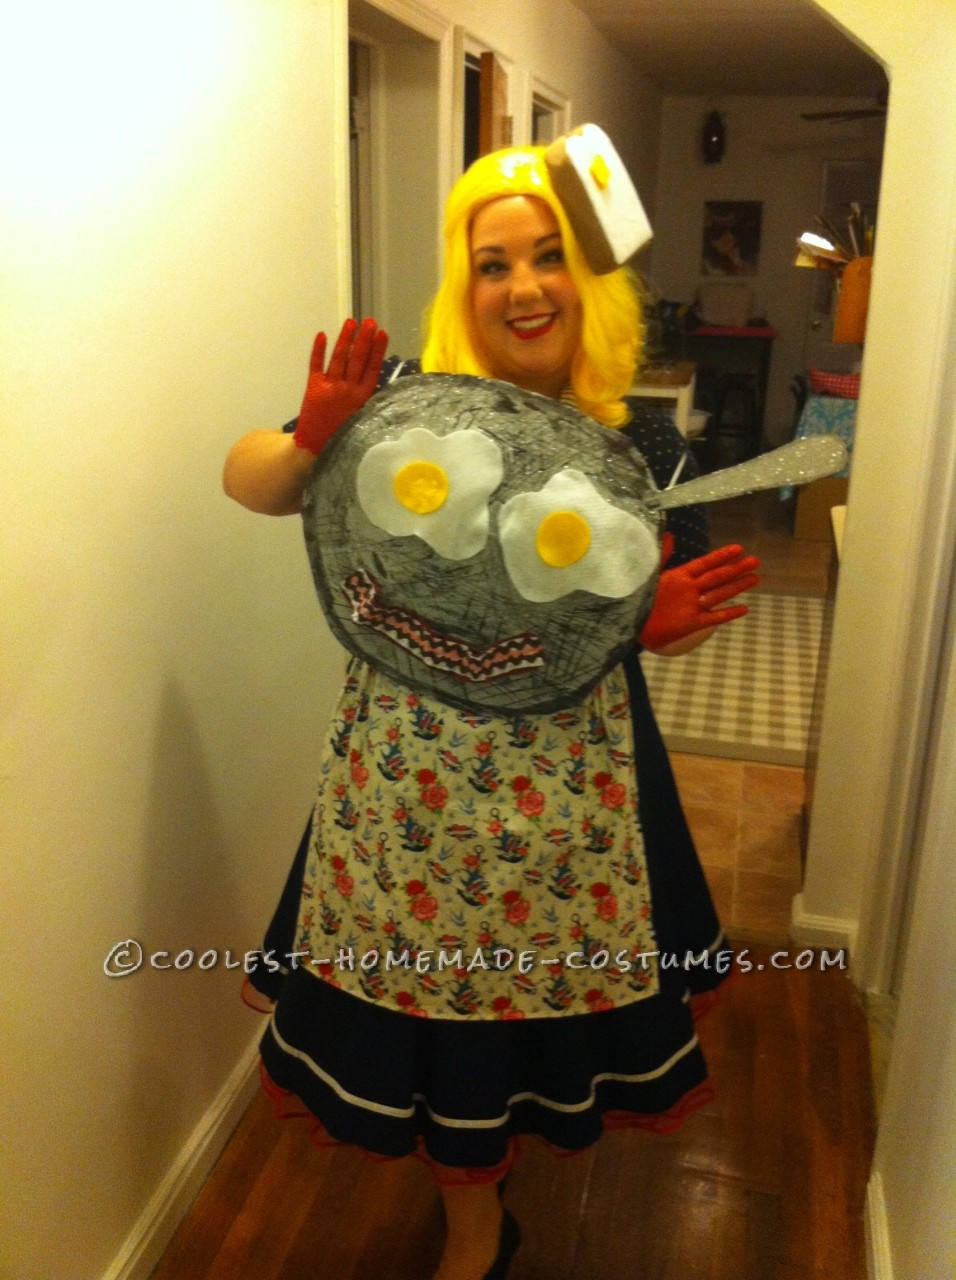 """I decided to be breakfast because women always feel the need to be something """"sexy"""" for Halloween. I wanted young girls to see that not-so-sexy thi"""